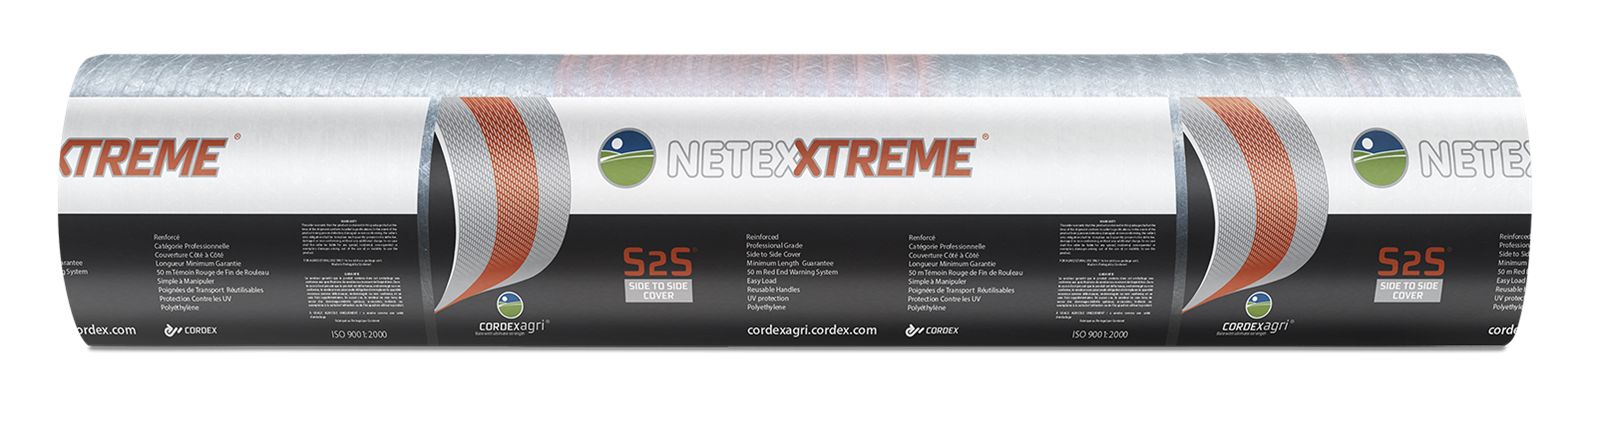 NETEXXTREME FRONT